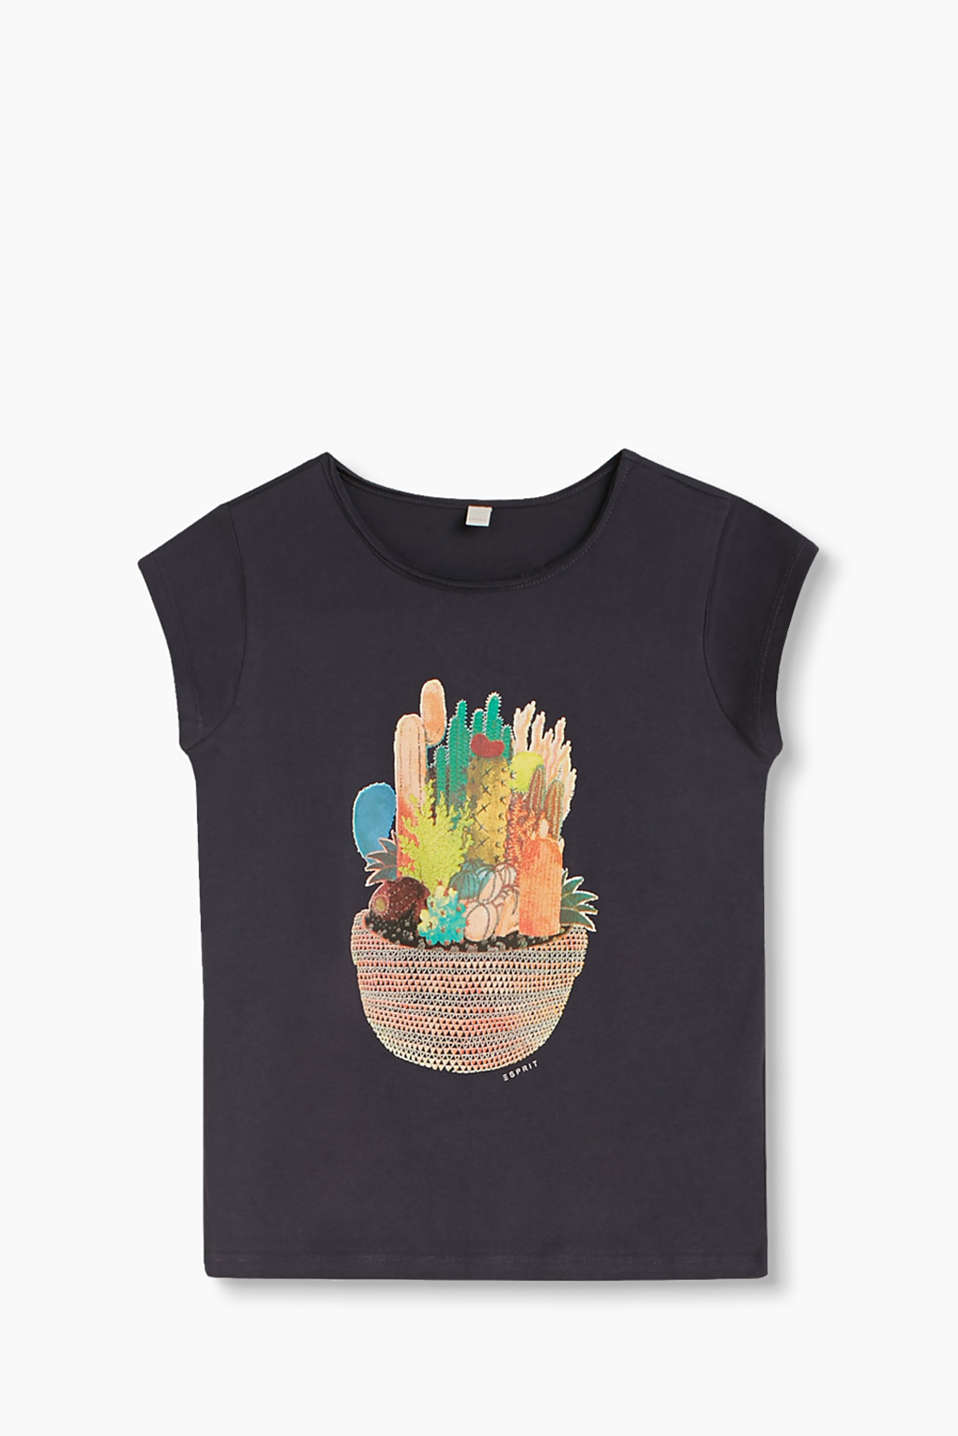 Soft, cotton-jersey T-shirt with a colourful, cactus print